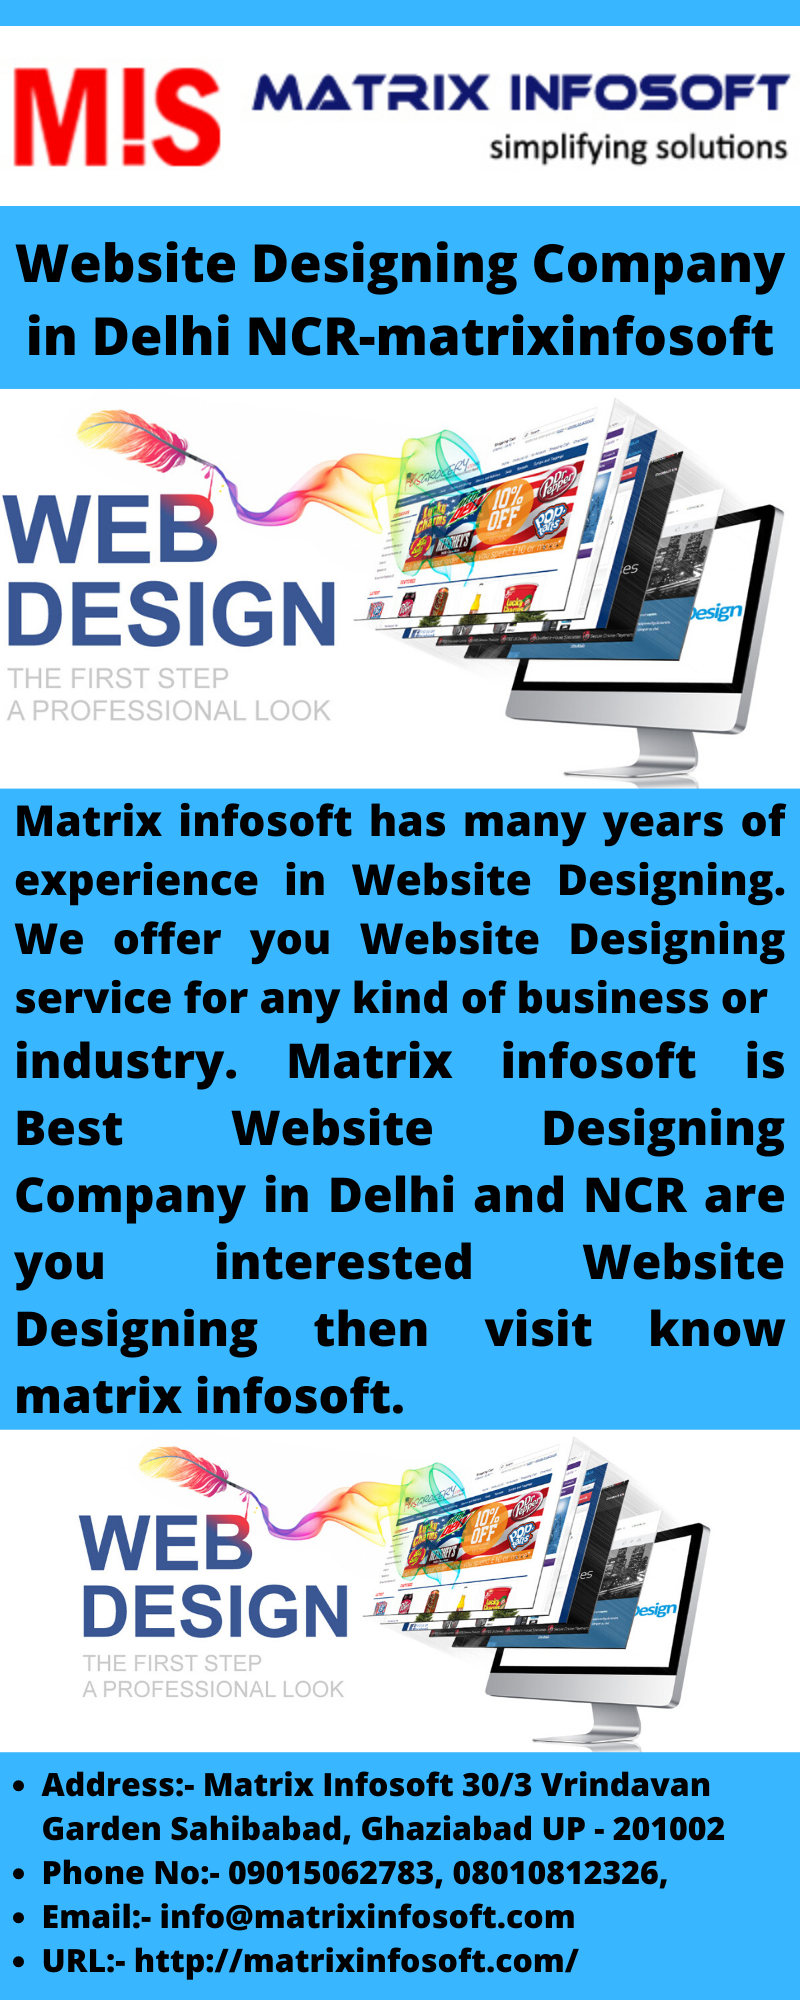 Matrix Infosoft Has Many Years Of Experience In Website Designing We Offer You Website Designing Servi In 2020 Website Design Web Design Packages Cheap Website Design